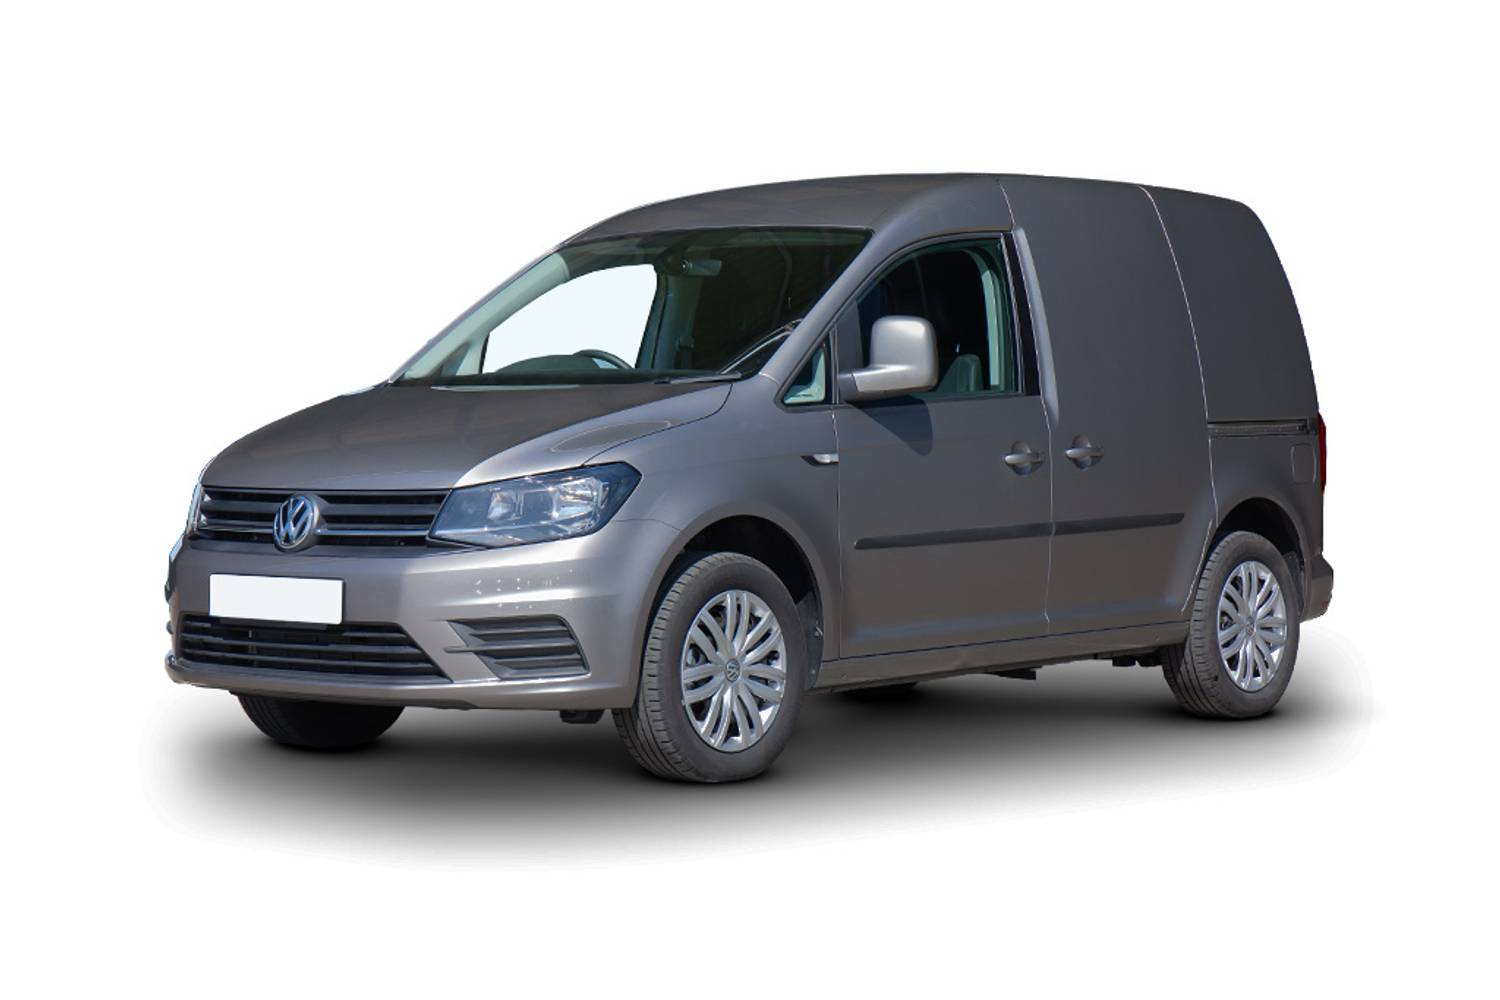 new volkswagen caddy maxi c20 diesel 2 0 tdi 150ps kombi. Black Bedroom Furniture Sets. Home Design Ideas